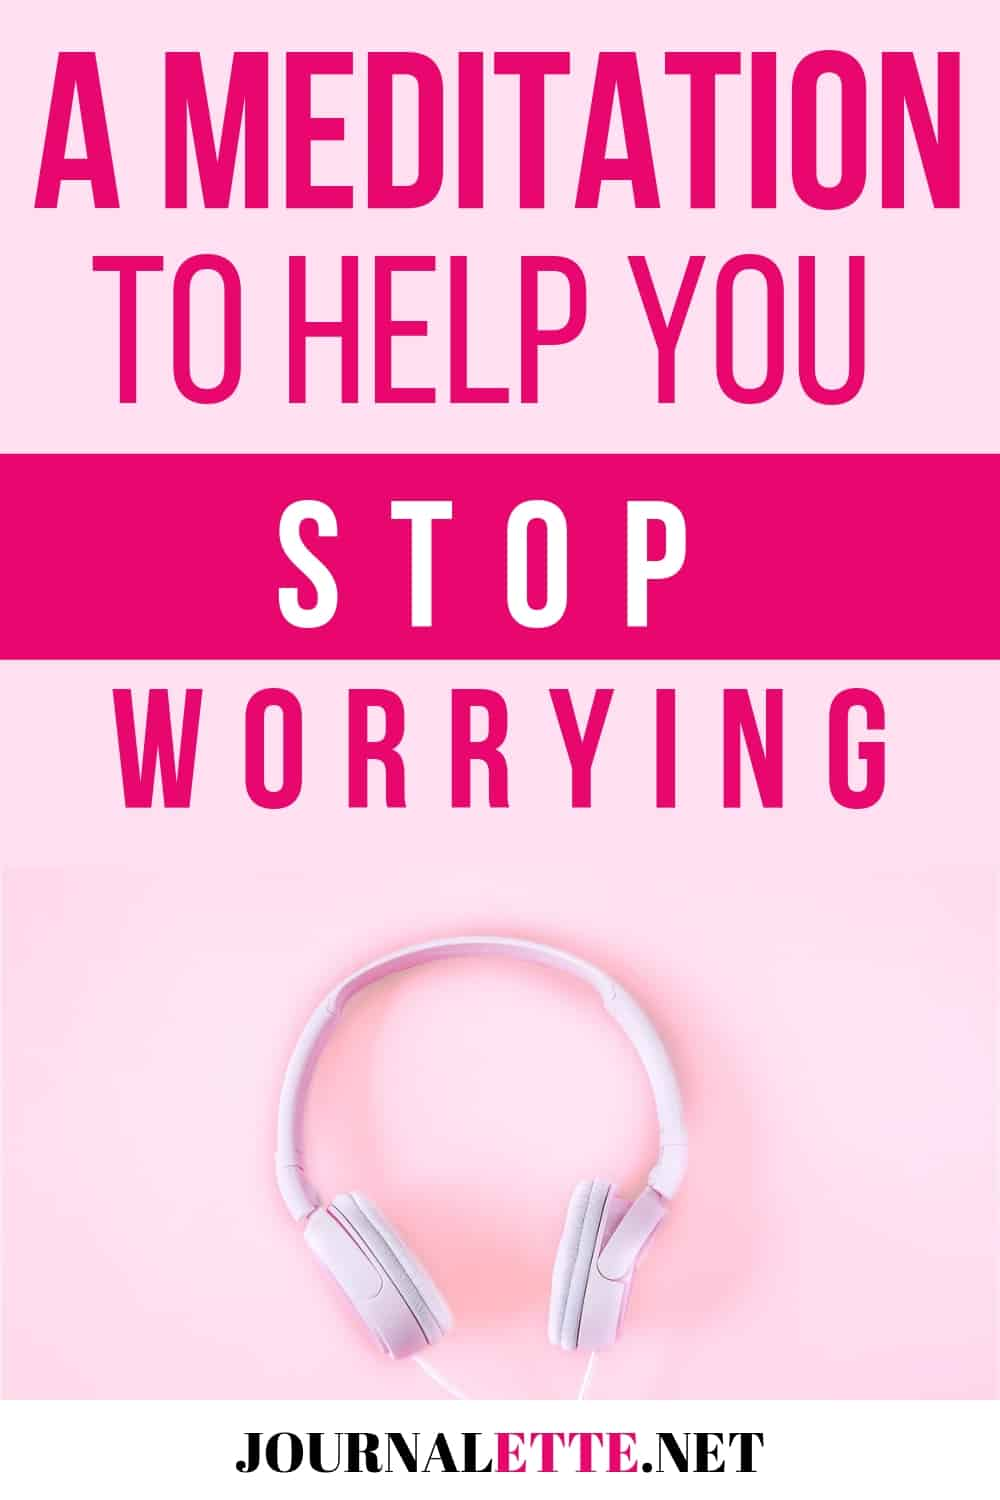 image of headphones text box a meditation to help you stop worrying